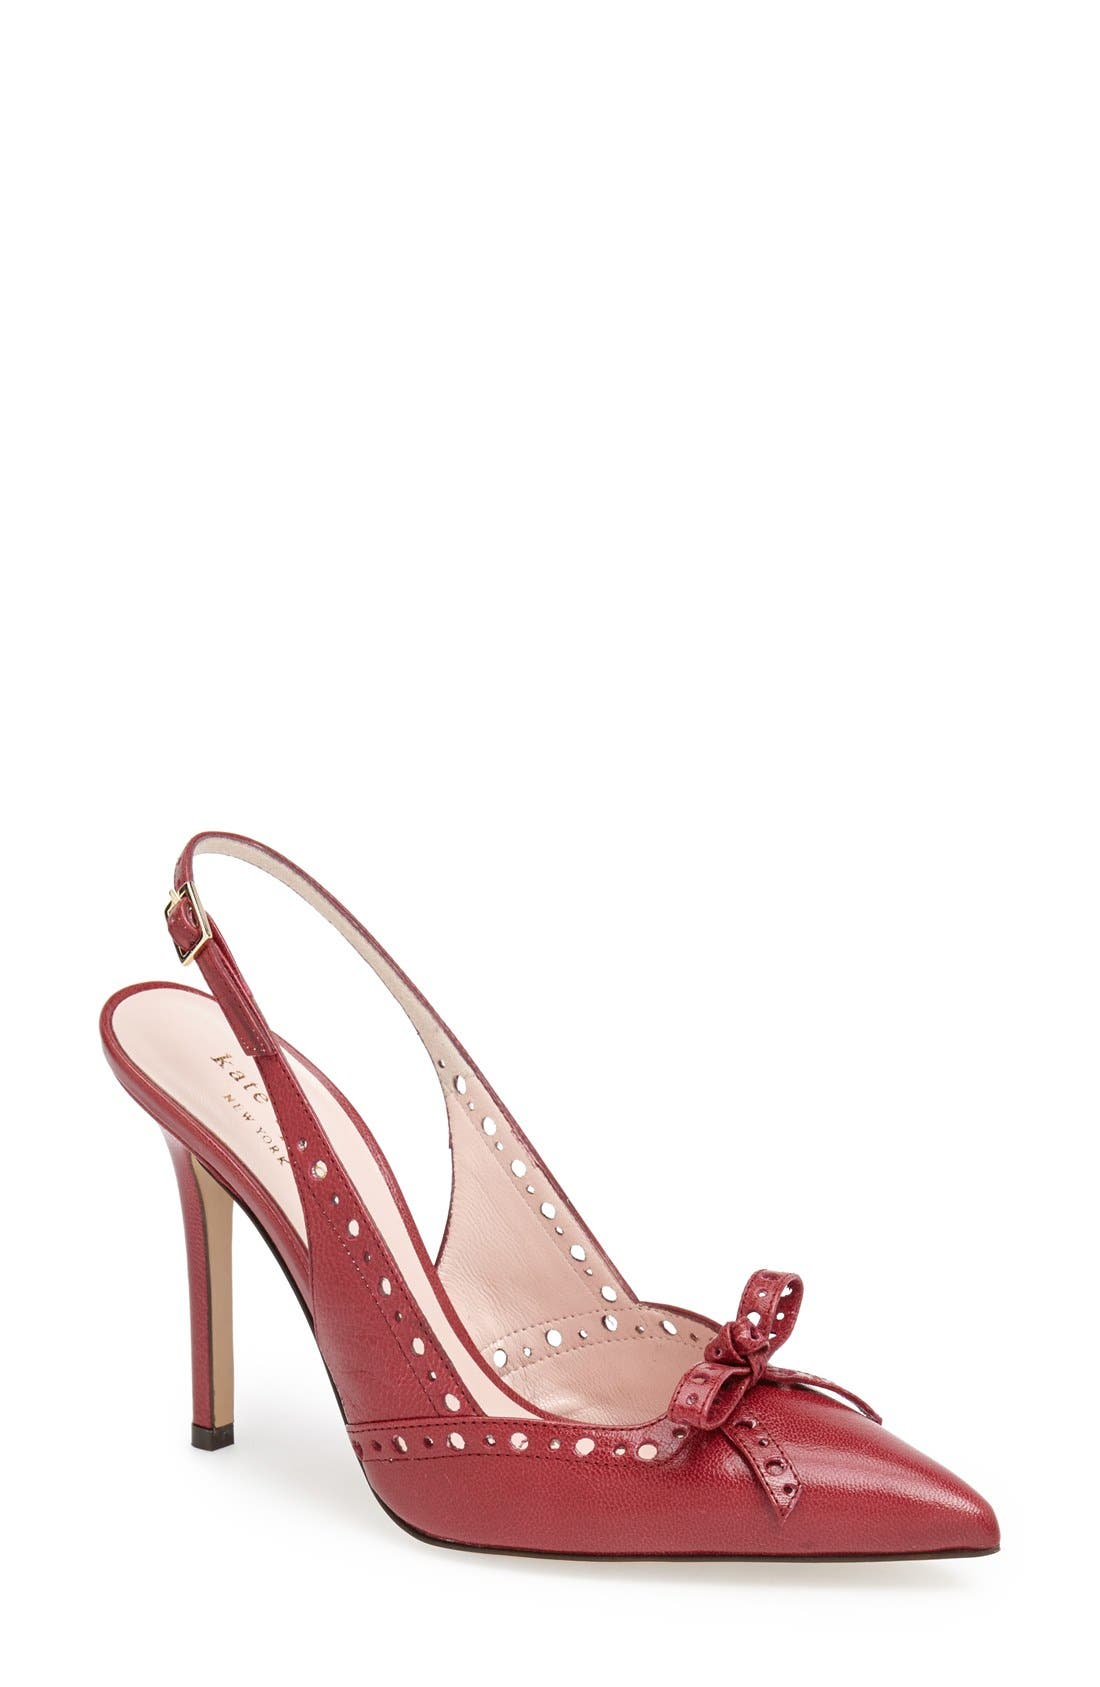 Main Image - kate spade new york 'lali' pump (Women)